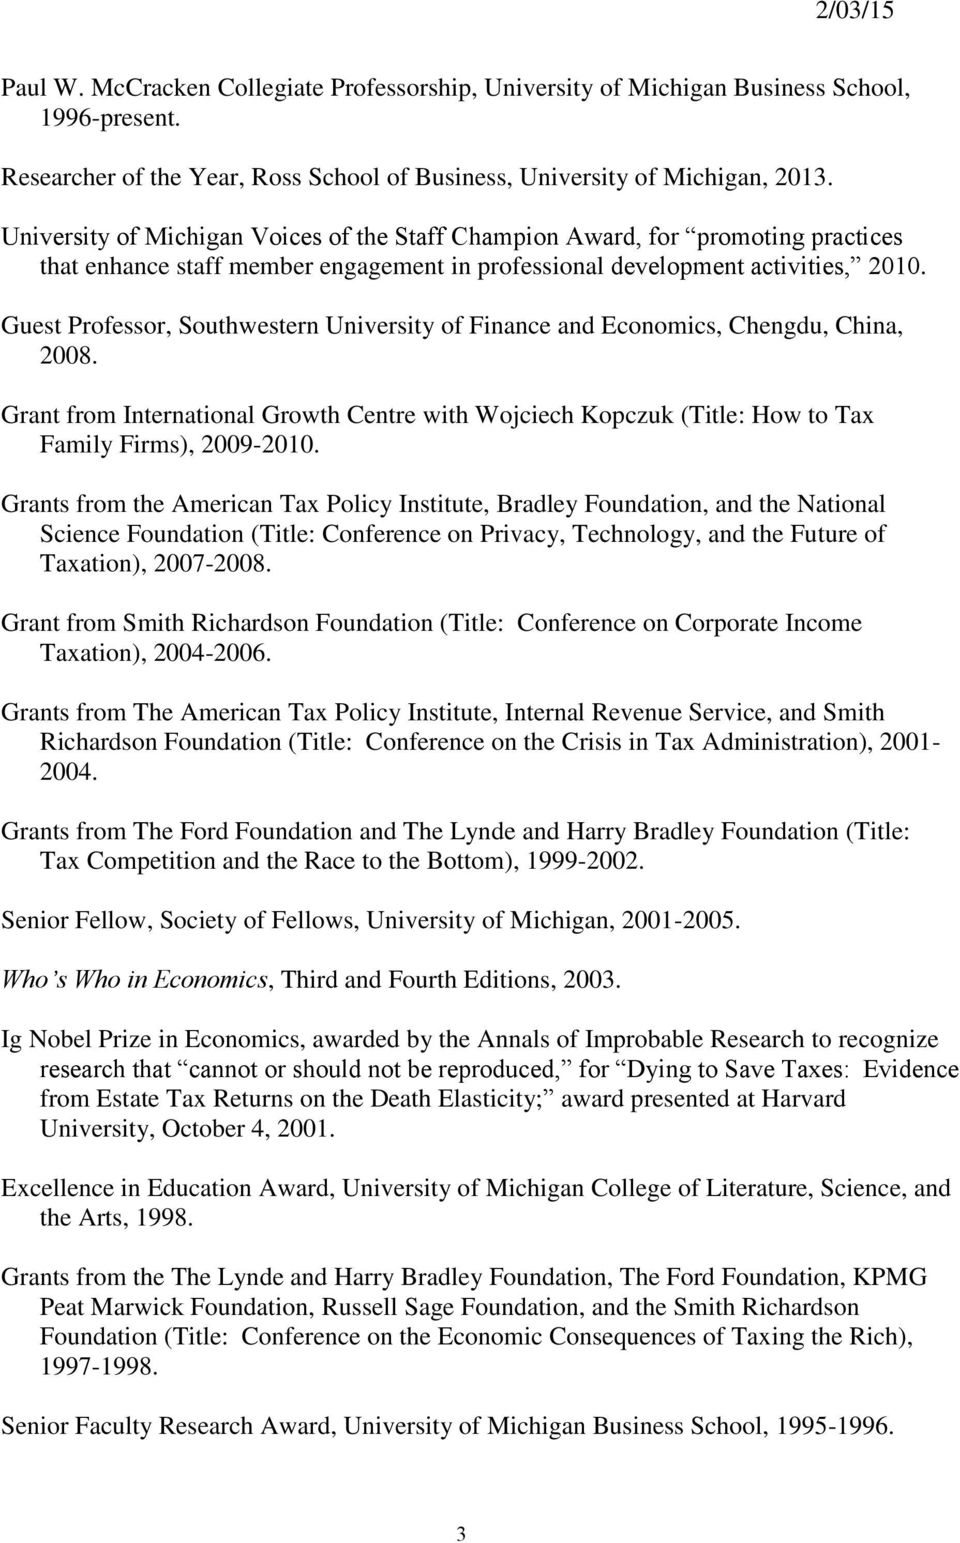 Guest Professor, Southwestern University of Finance and Economics, Chengdu, China, 2008. Grant from International Growth Centre with Wojciech Kopczuk (Title: How to Tax Family Firms), 2009-2010.